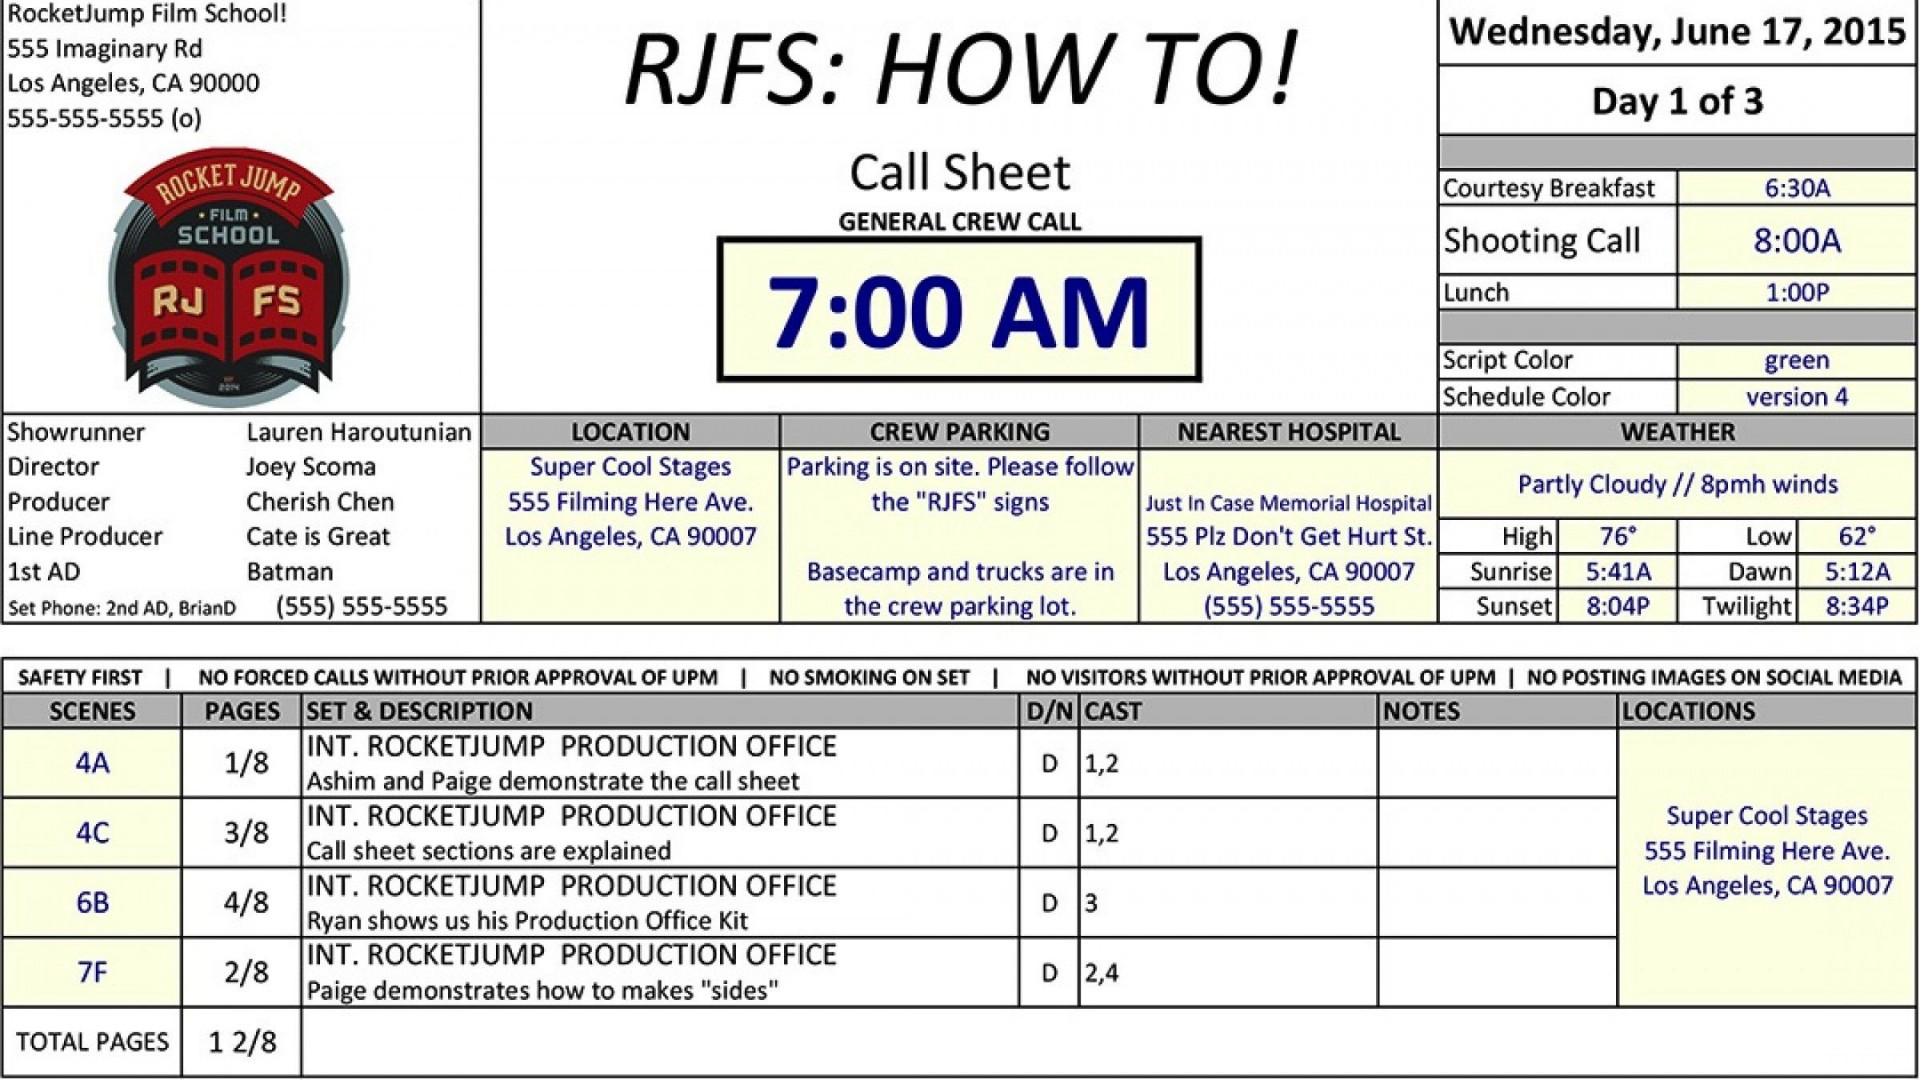 000 Astounding Film Call Sheet Format Picture  Production Template Student1920